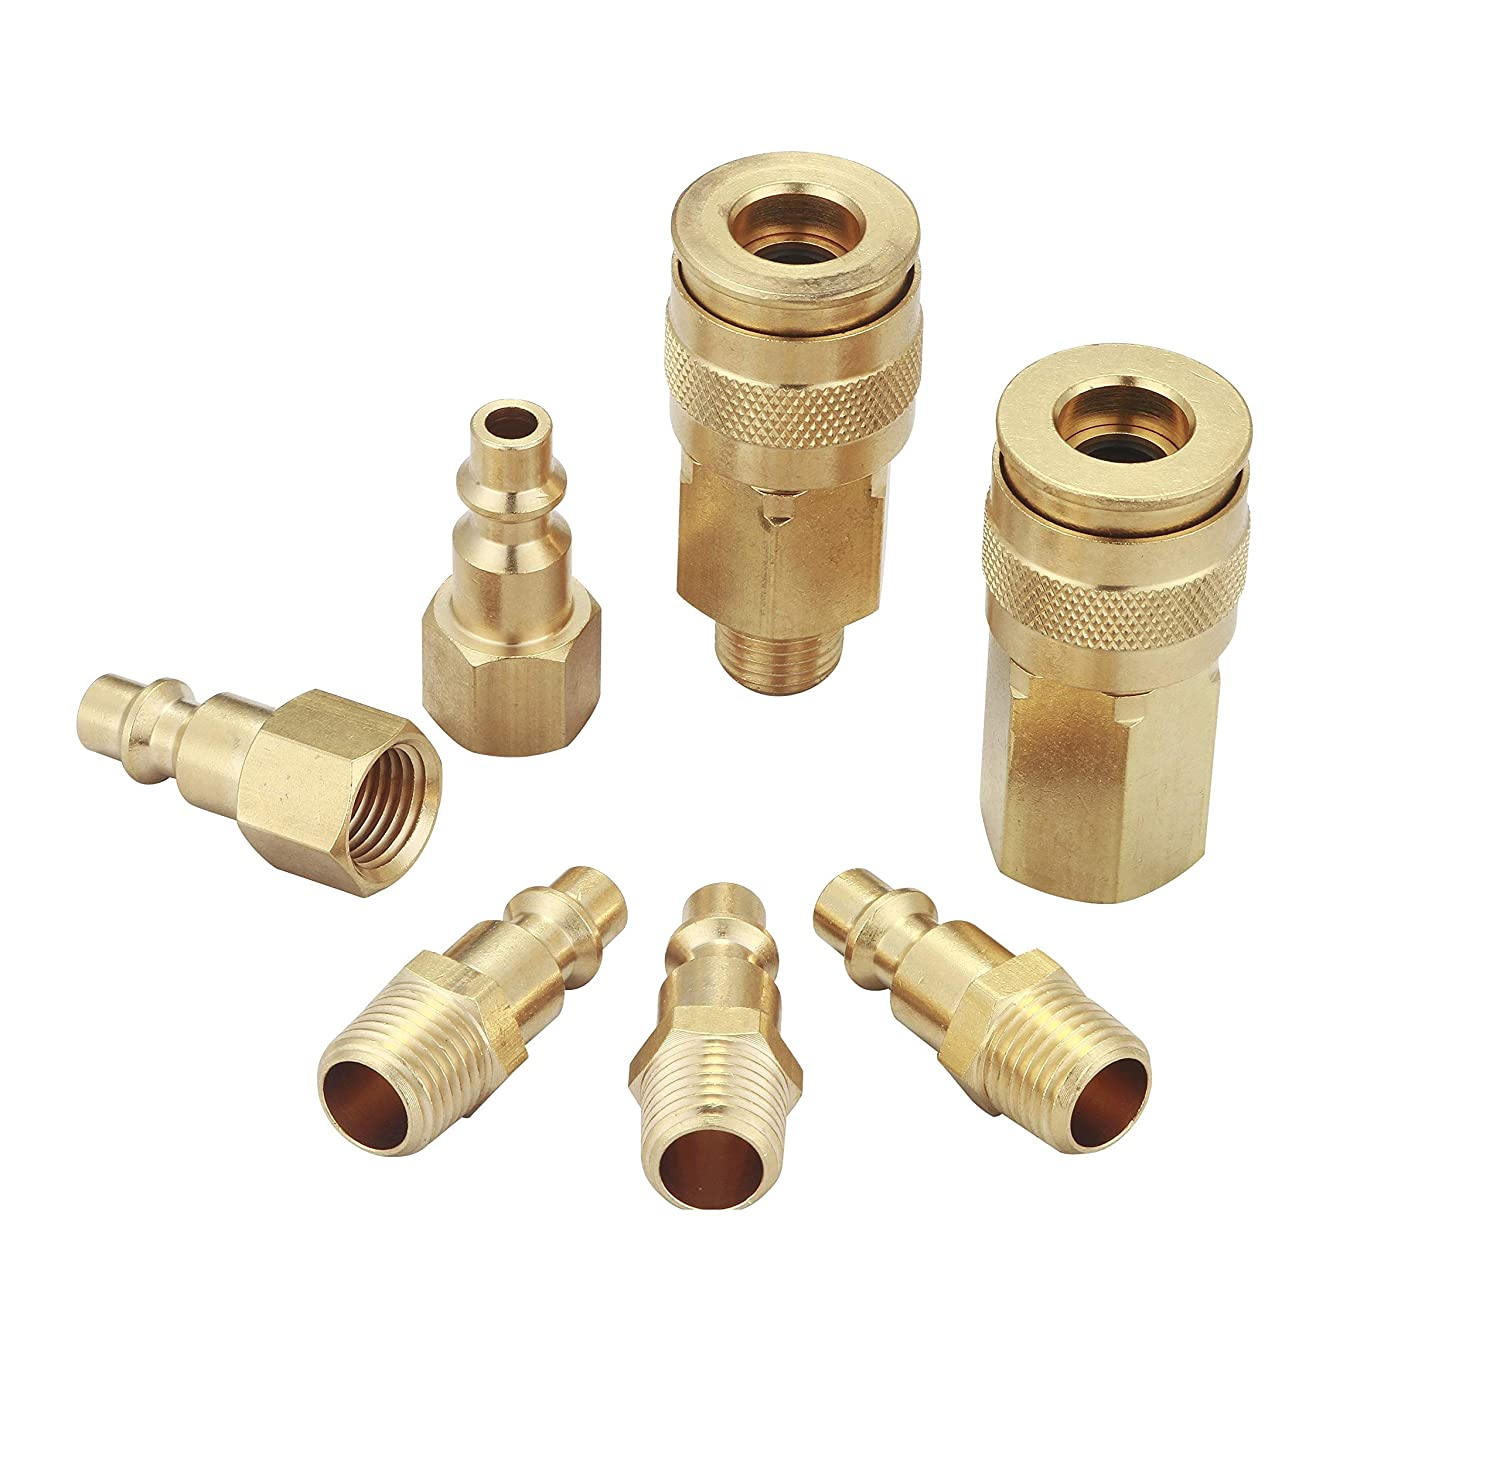 Air hose fittings and Air Coupler: Air Compressor Quick-Connect fnpt female  Coupler & mnpt male Plug Kit (Industrial Type D,1/4-Inch  NPT, Solid